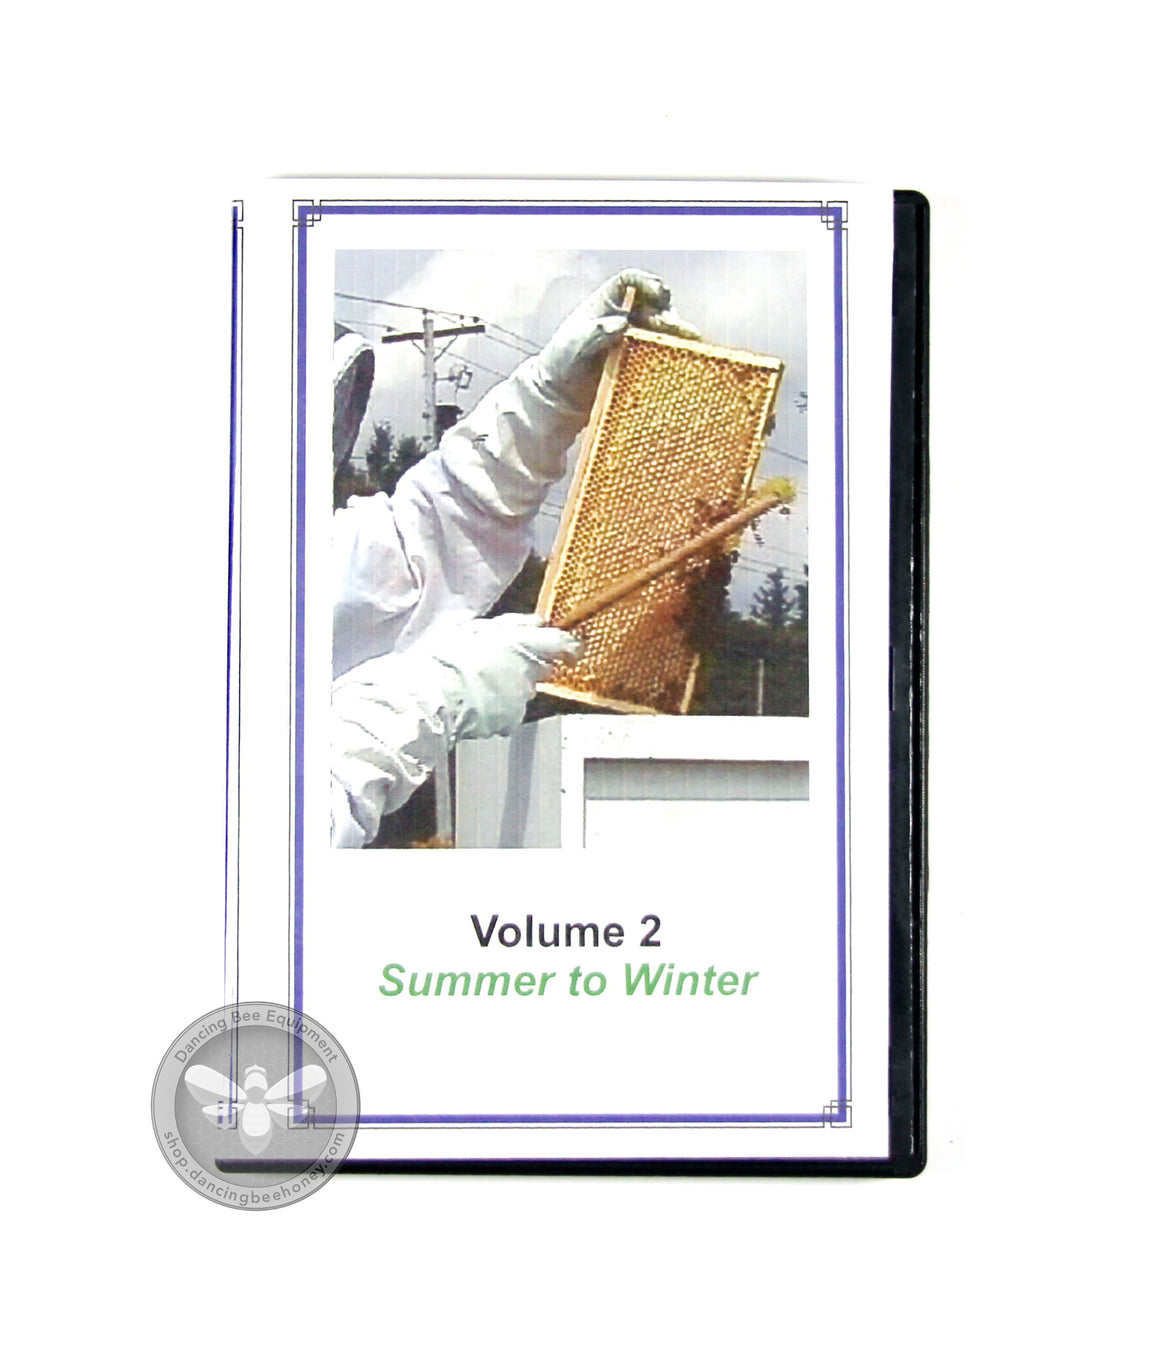 Beekeeping Volume 2 <br> Summer to Winter <br> DVD